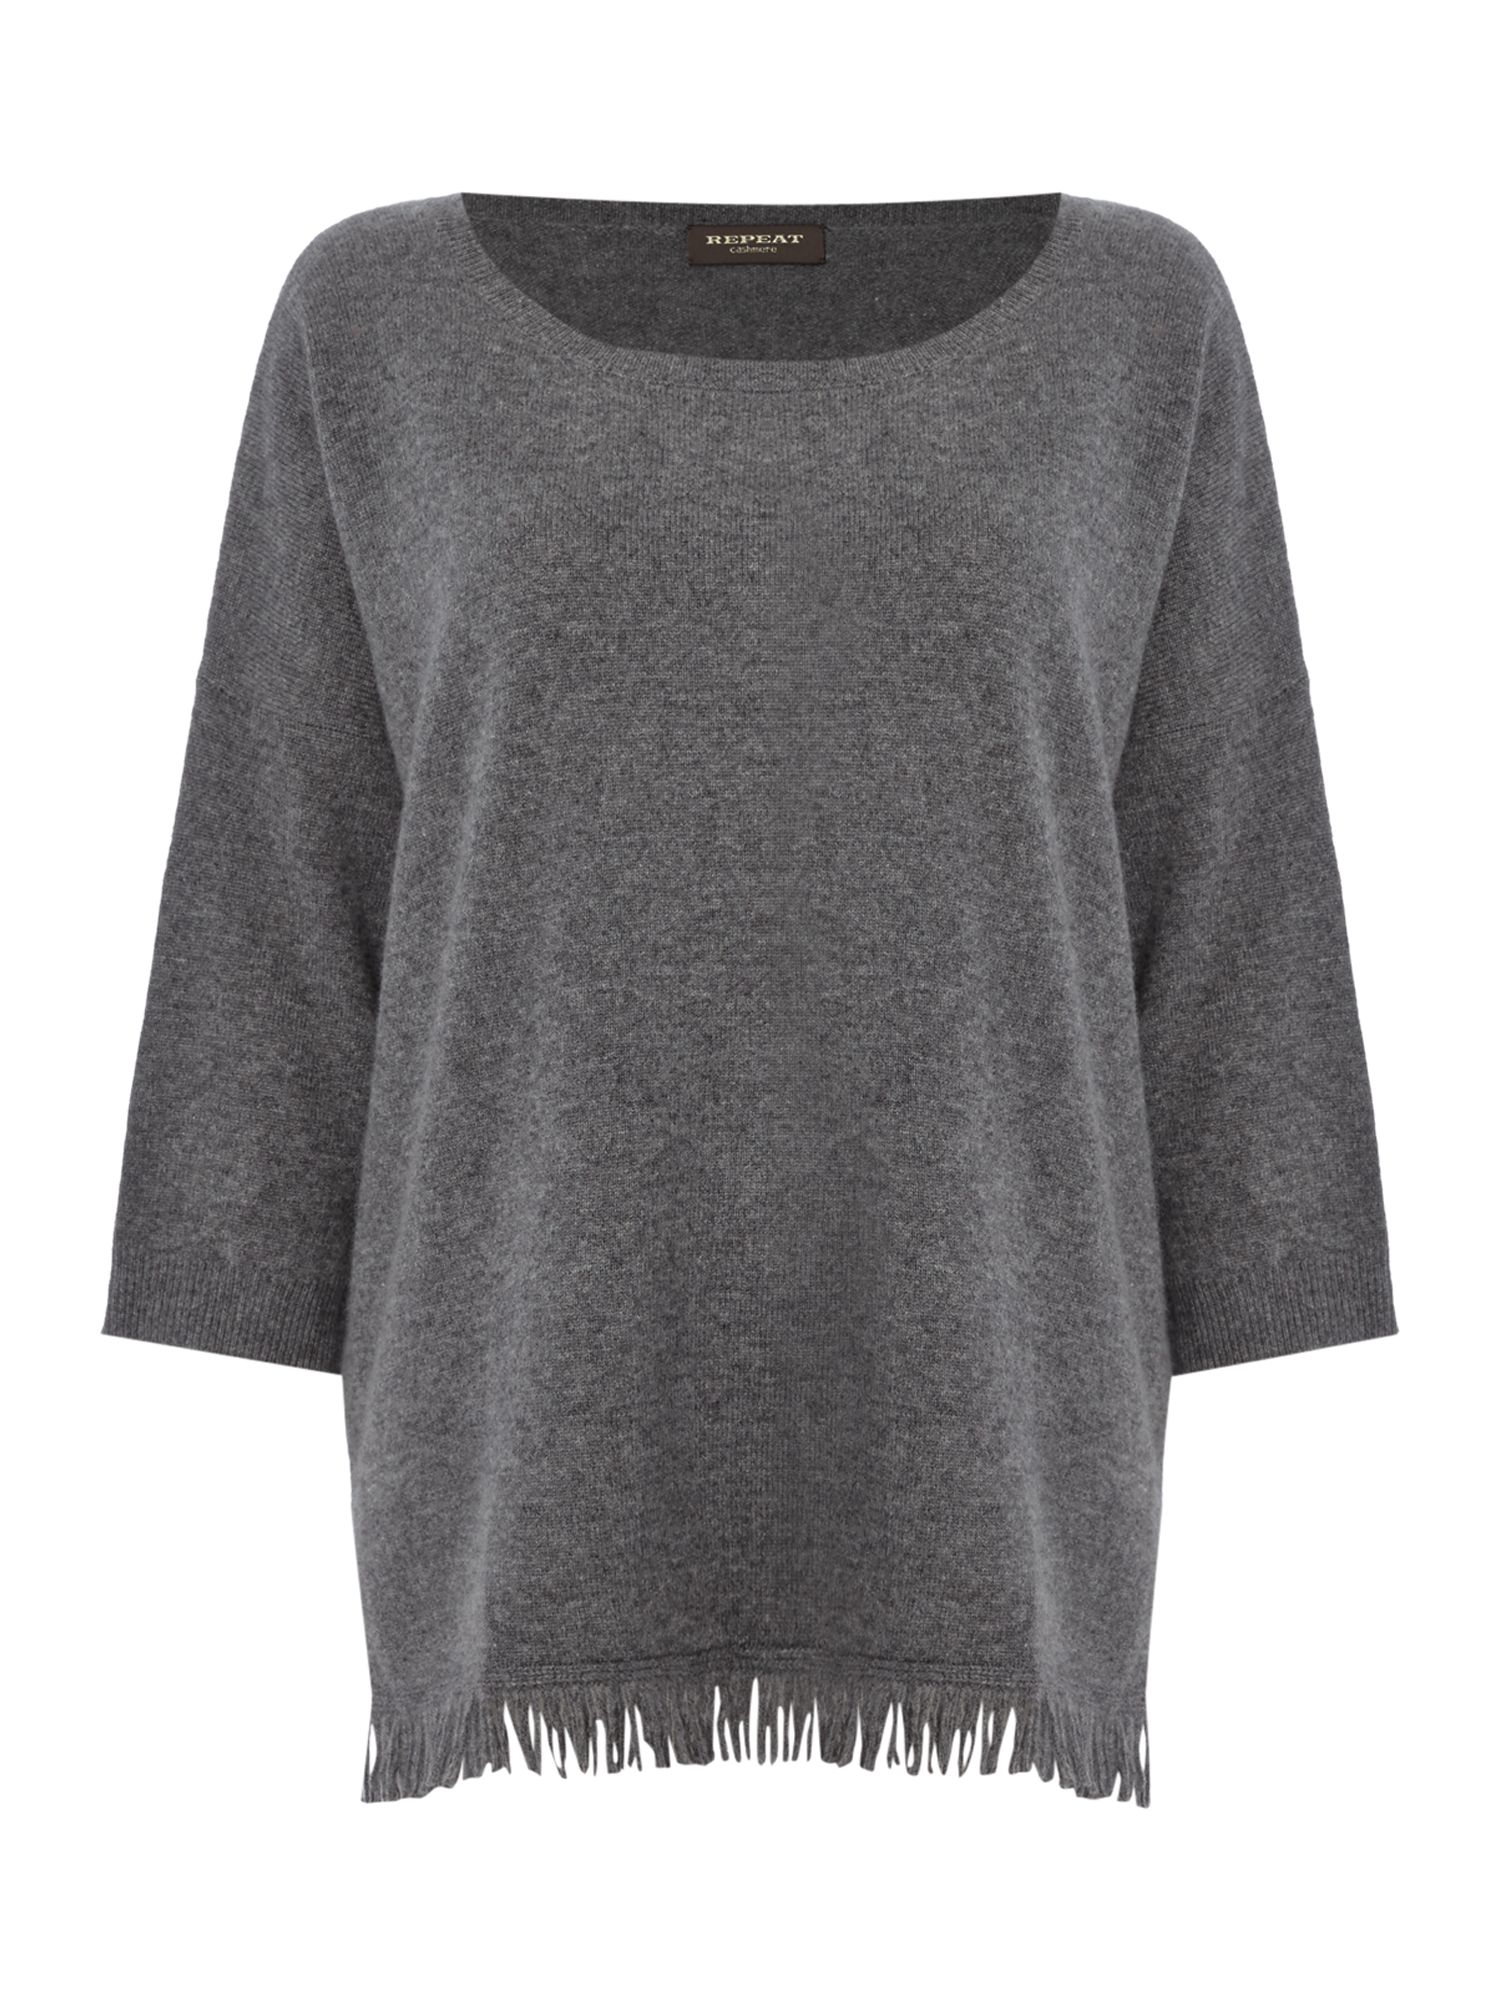 Repeat Cashmere Repeat Cashmere Round neck fringed bottom jumper, Mid Grey